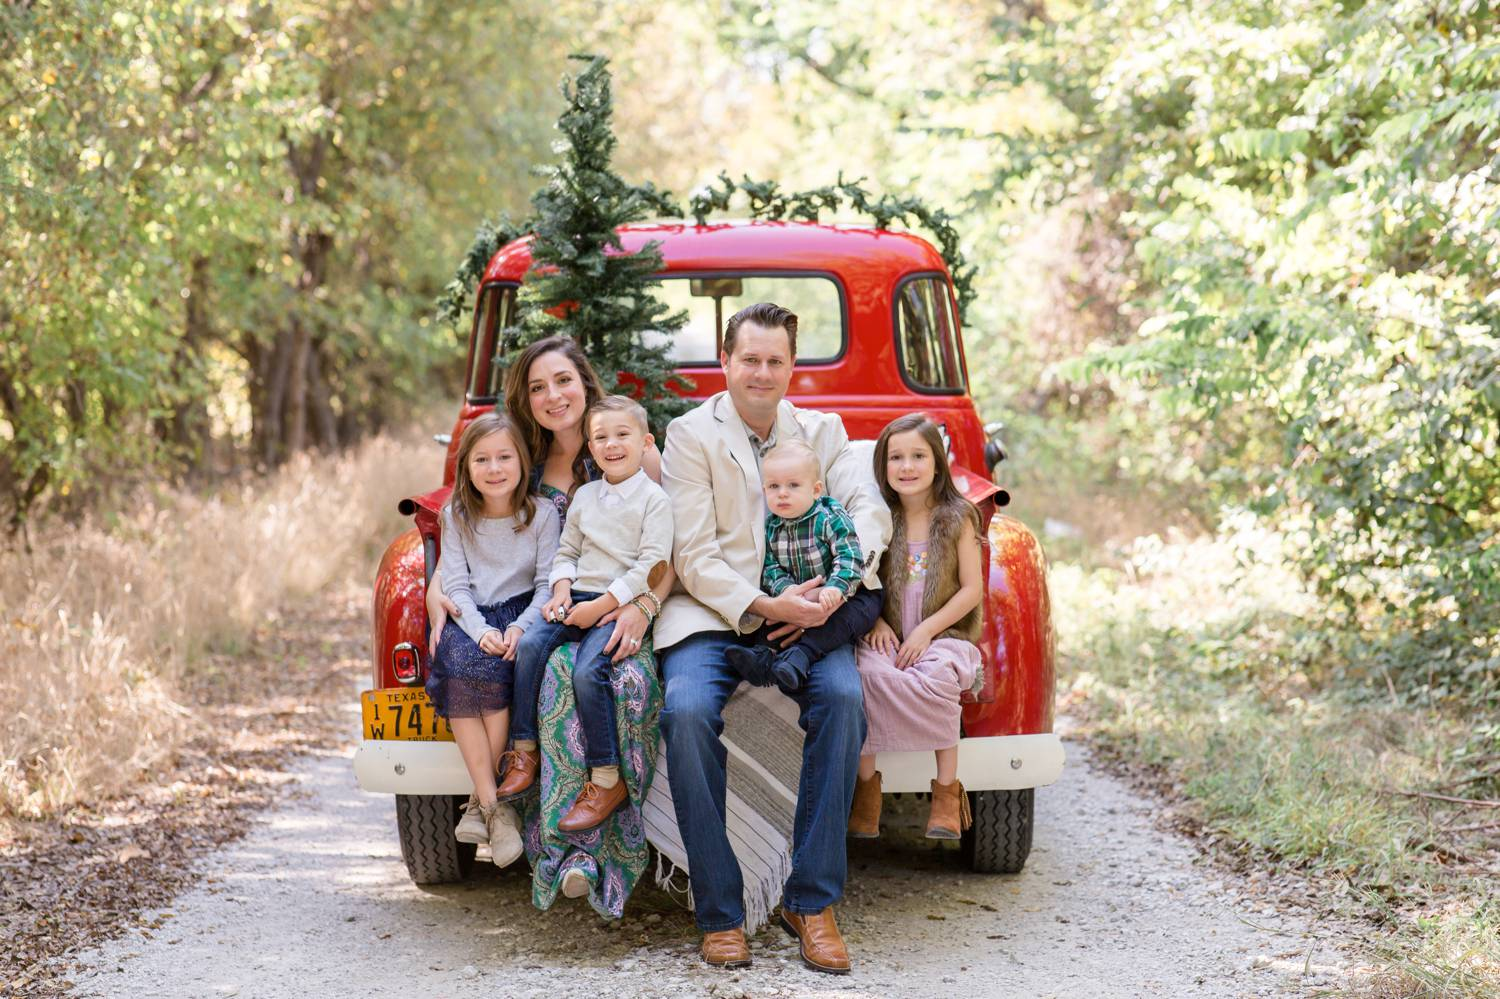 In this photo by Rebecca Rice, a mom, dad, and four young kids sit on the back of a red pickup truck that's draped with garland and decorated with a small Christmas tree. Christmas Mini Sessions: Ideas Families will ADORE!